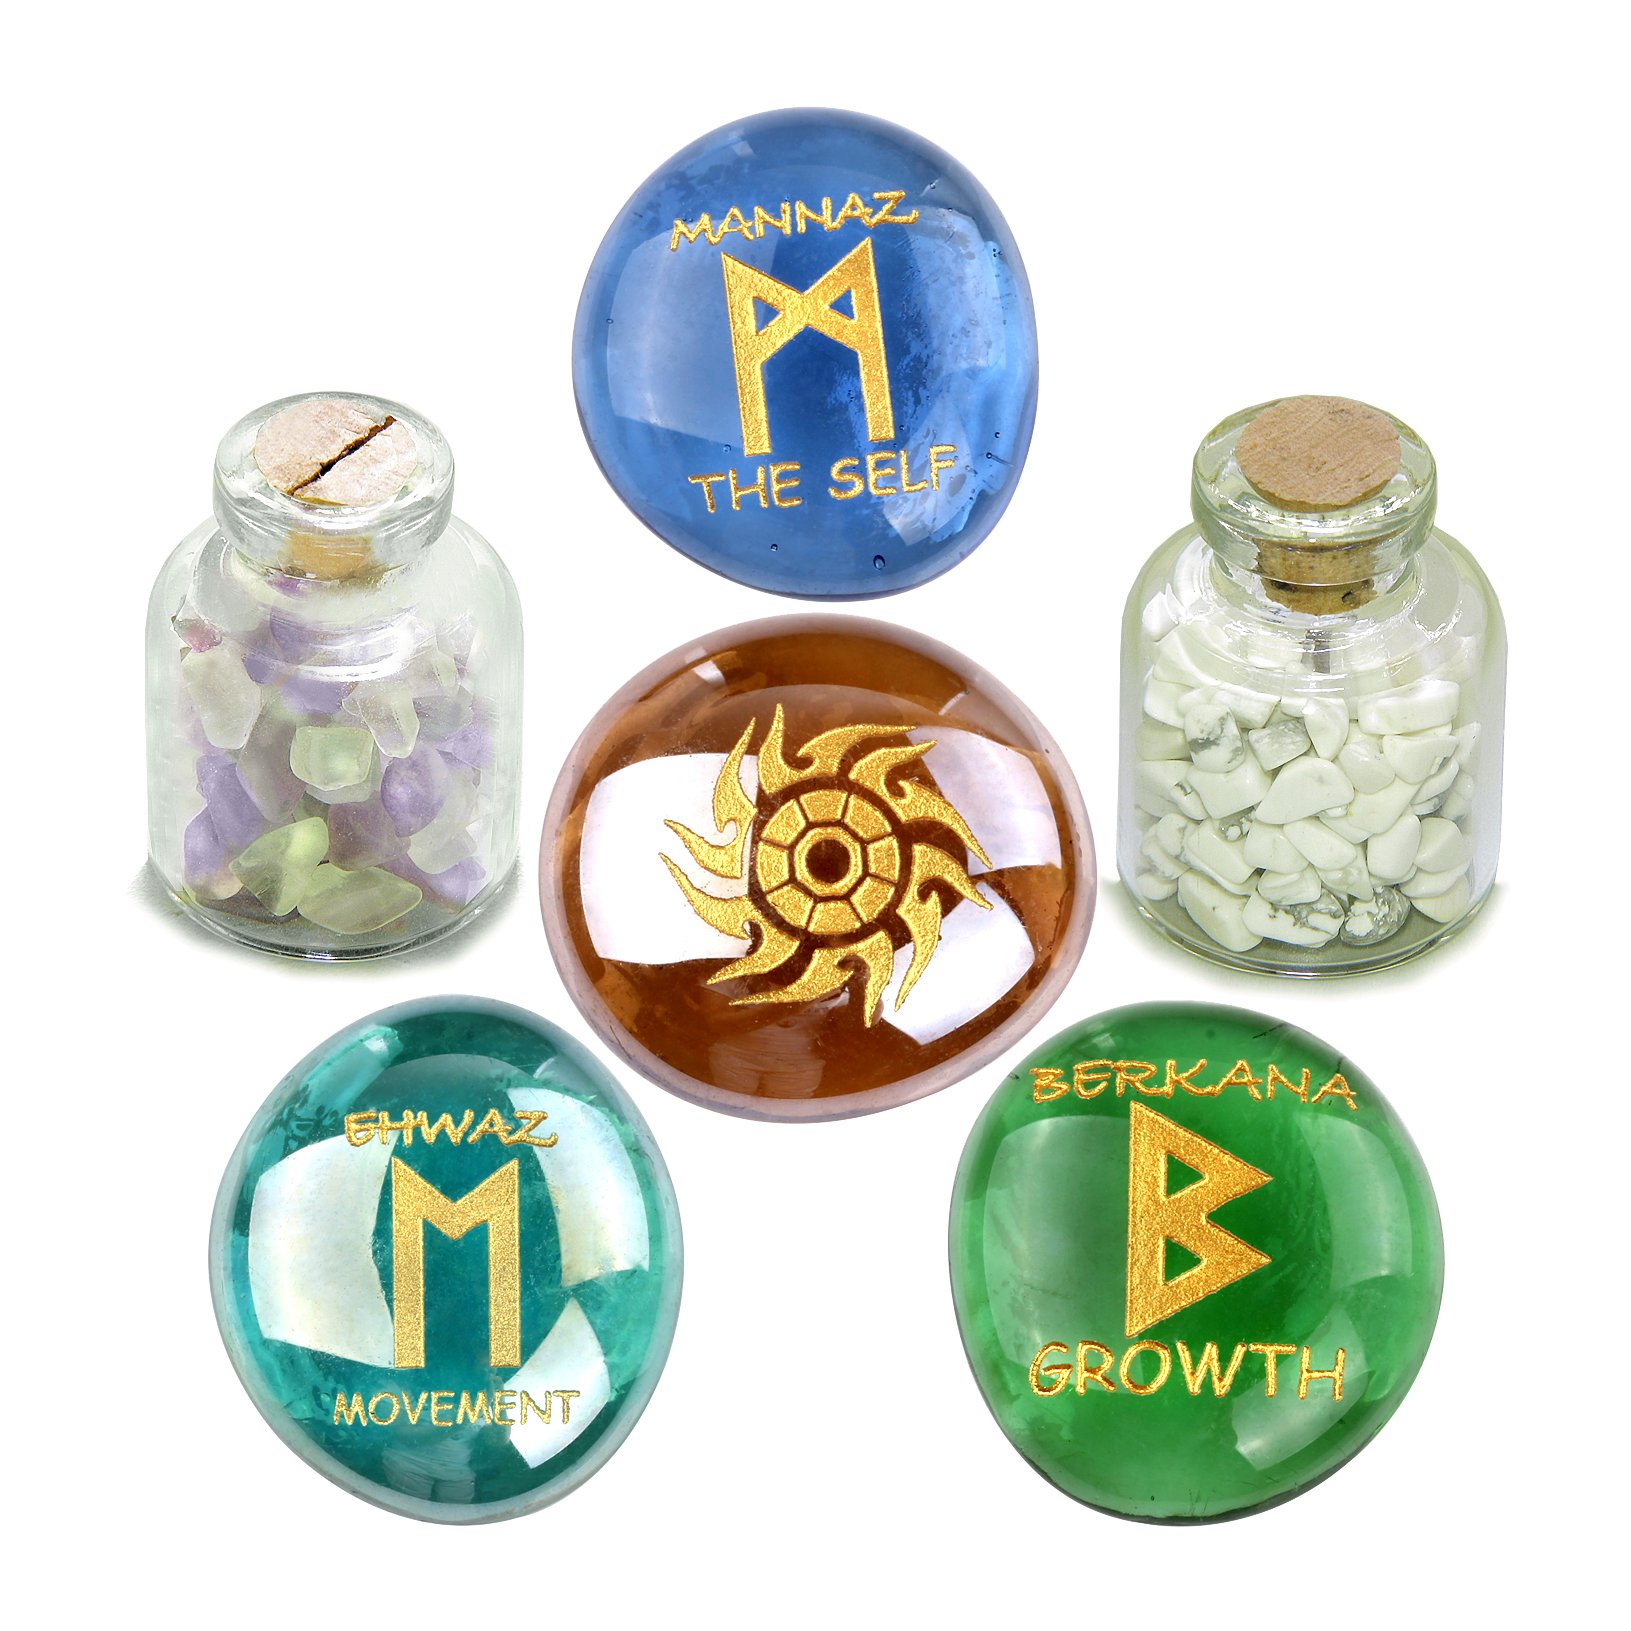 View All Healing Powers Talisman Fluorite Gemstone Amulets and Gifts